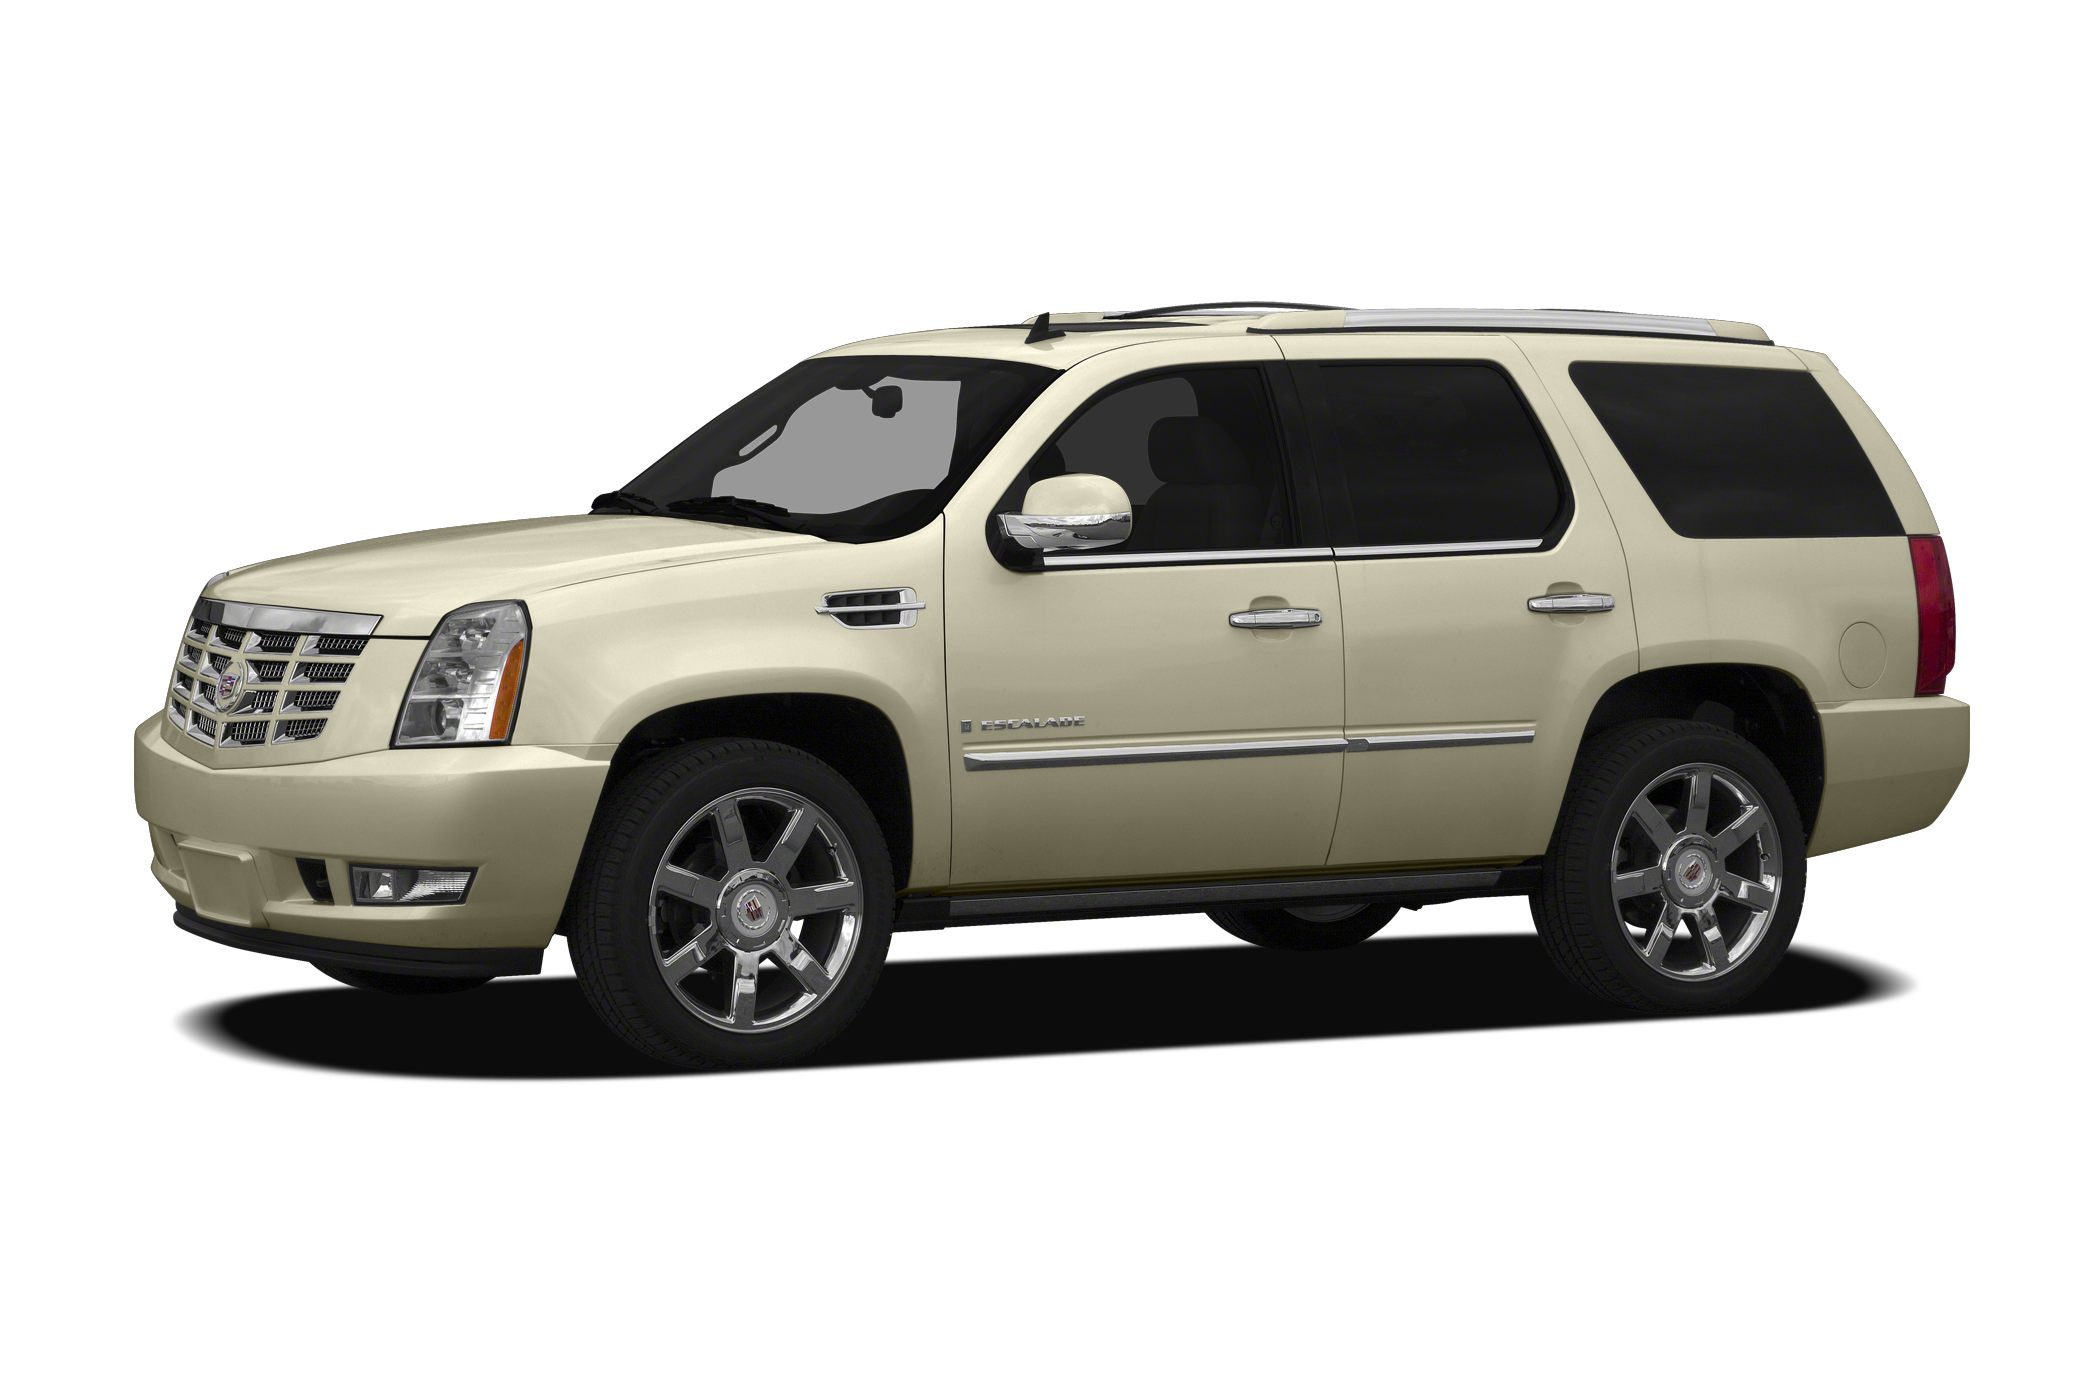 2009 Cadillac Escalade SUV for sale in Indianapolis for $29,999 with 74,507 miles